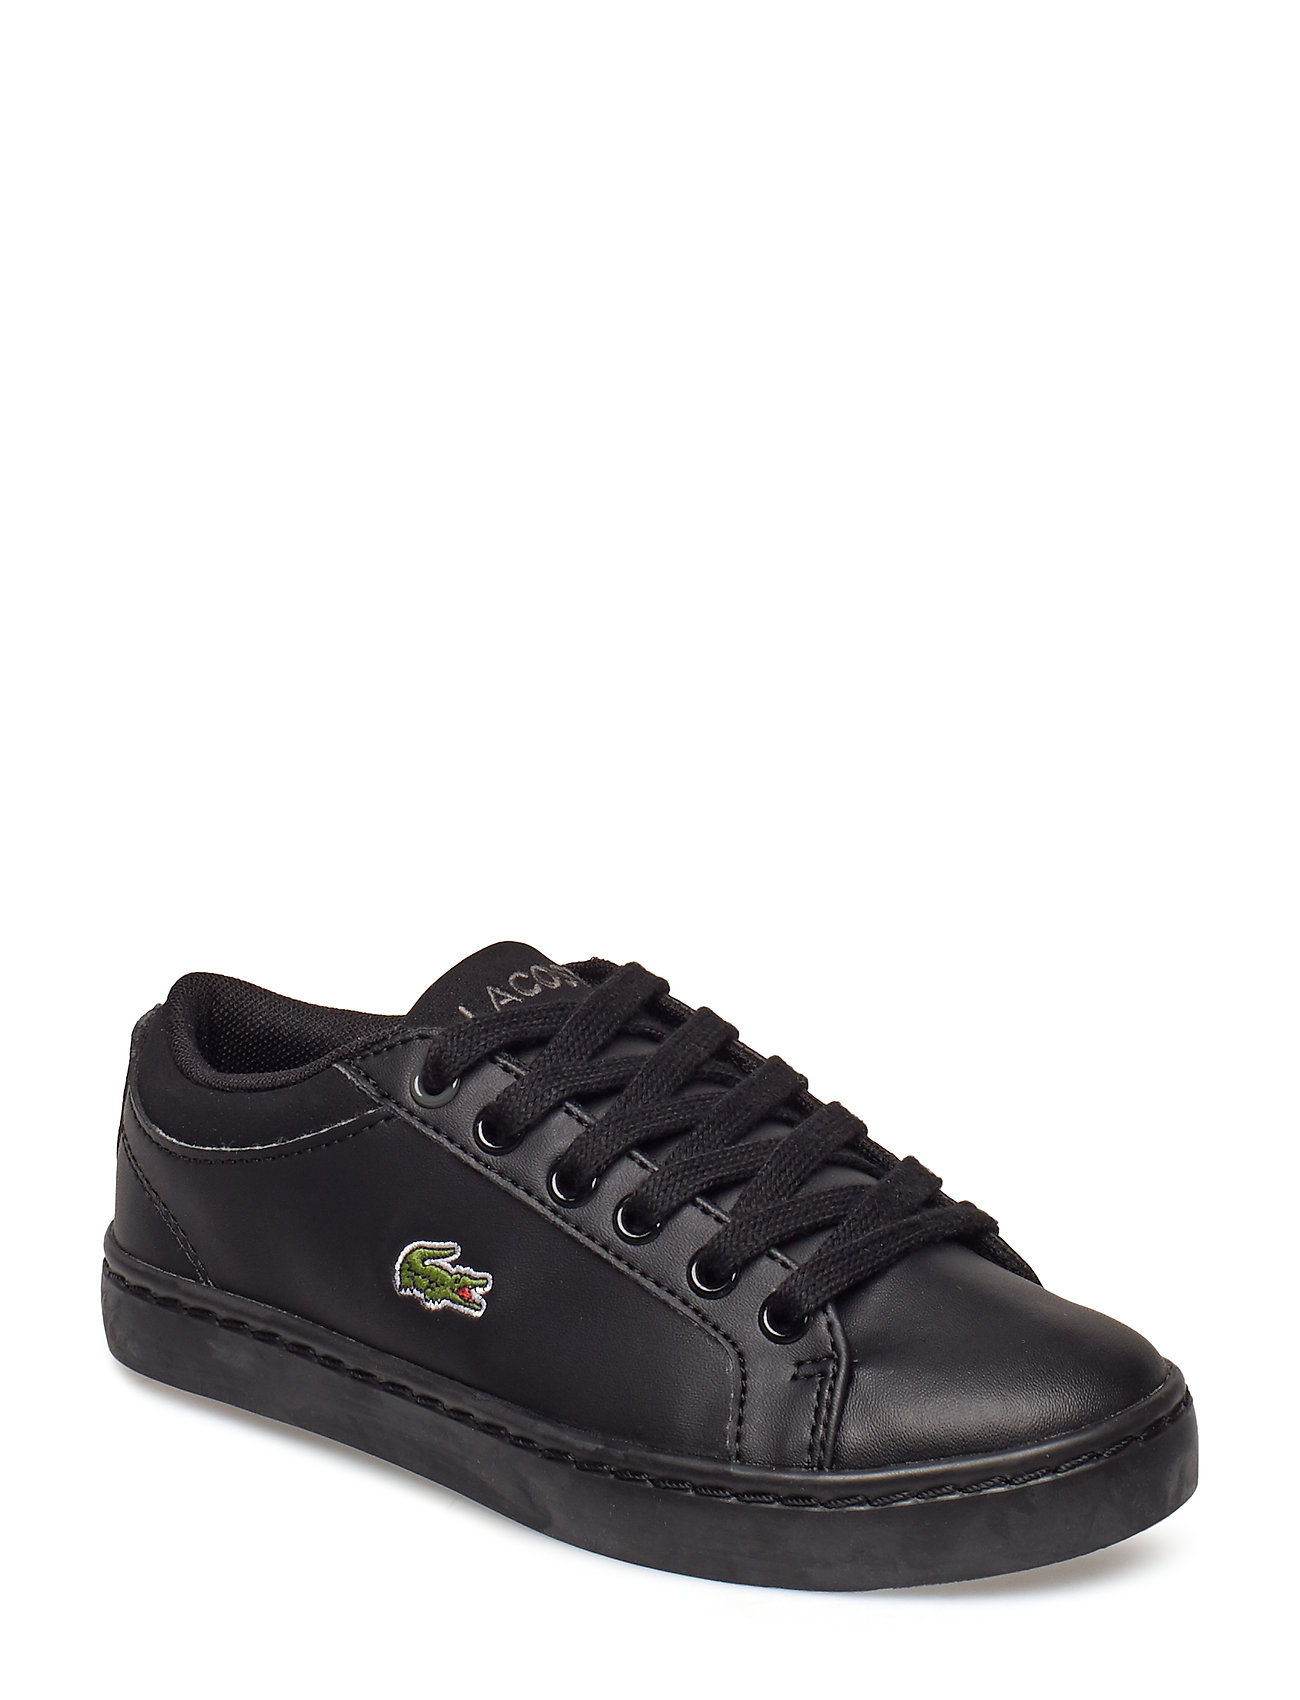 Lacoste Shoes Straightset BL 1